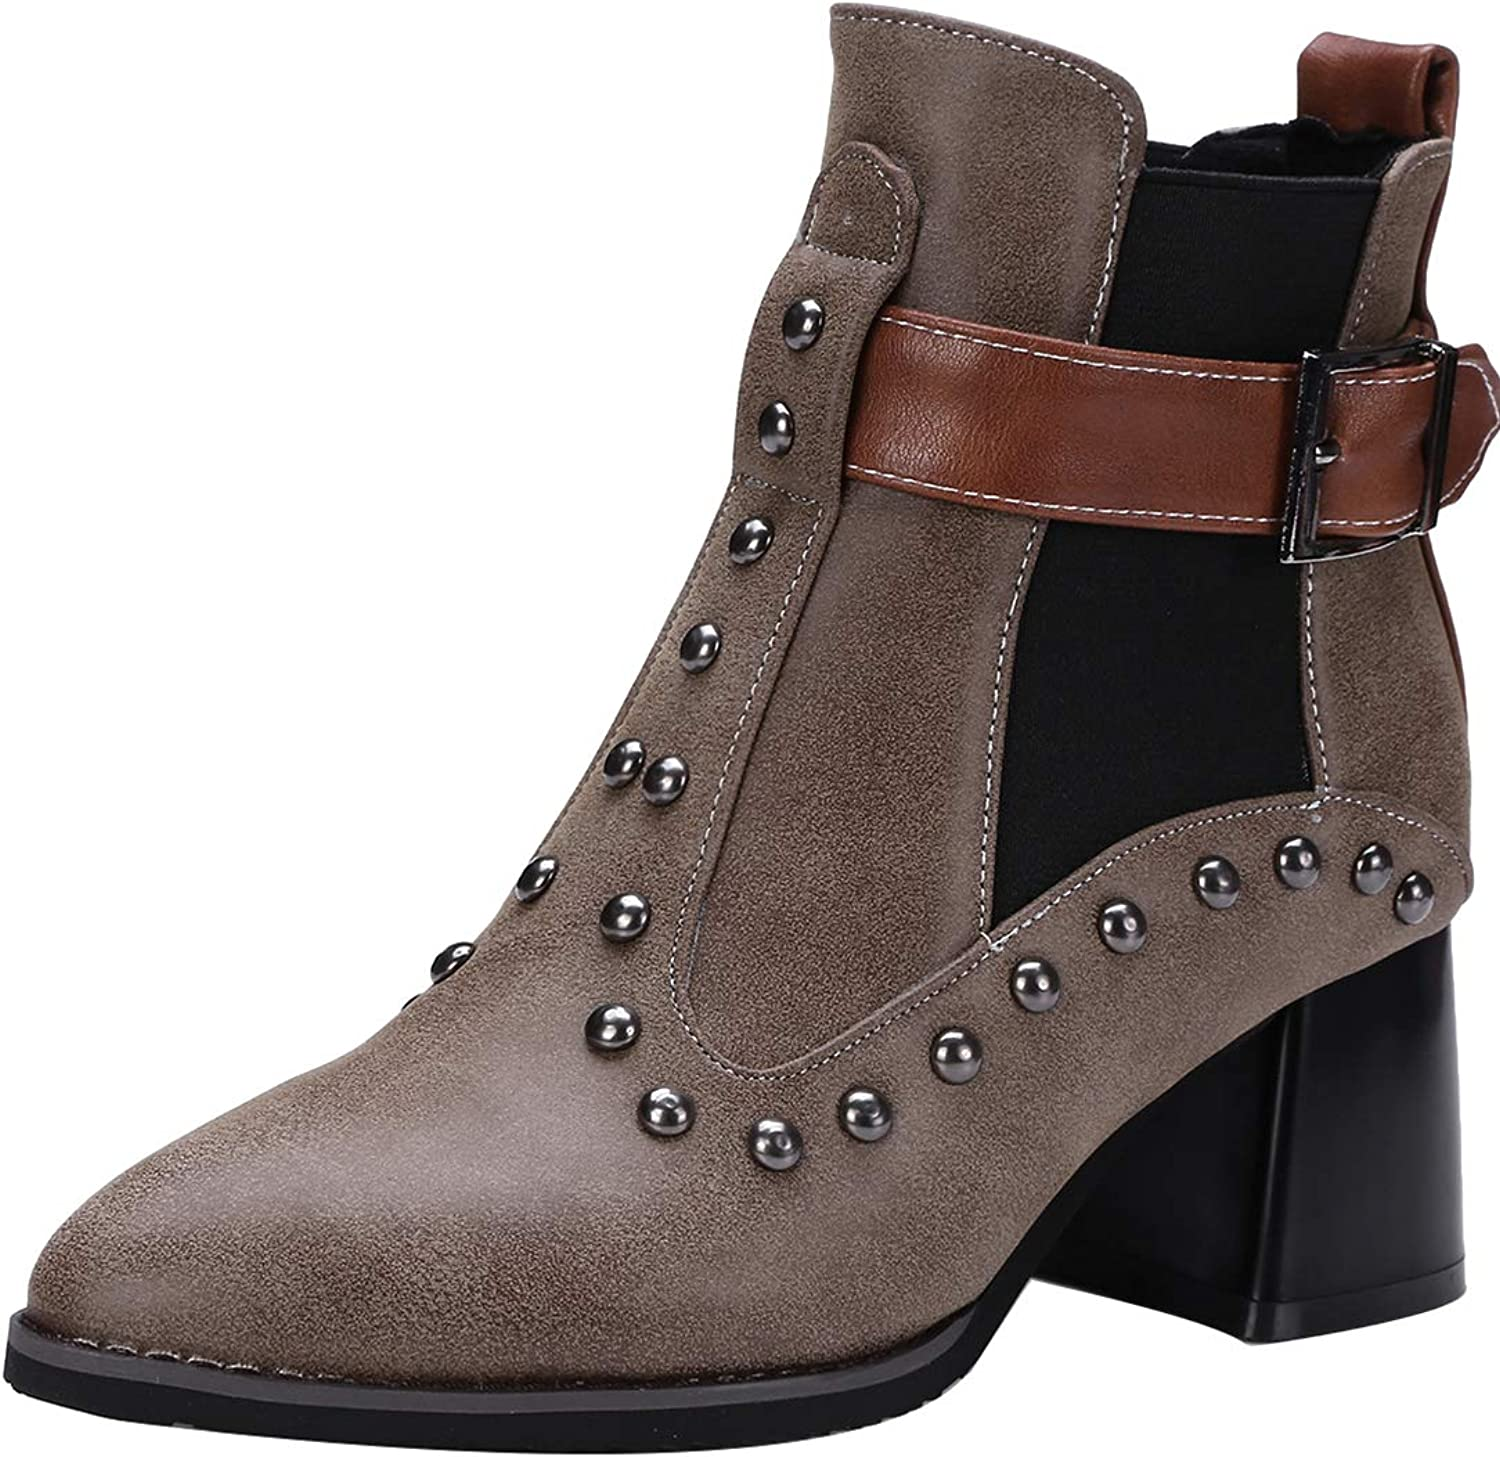 Jushee Womens Juguida 6 cm mid-Heel Ankle Pull-on Patent-Leather Boots